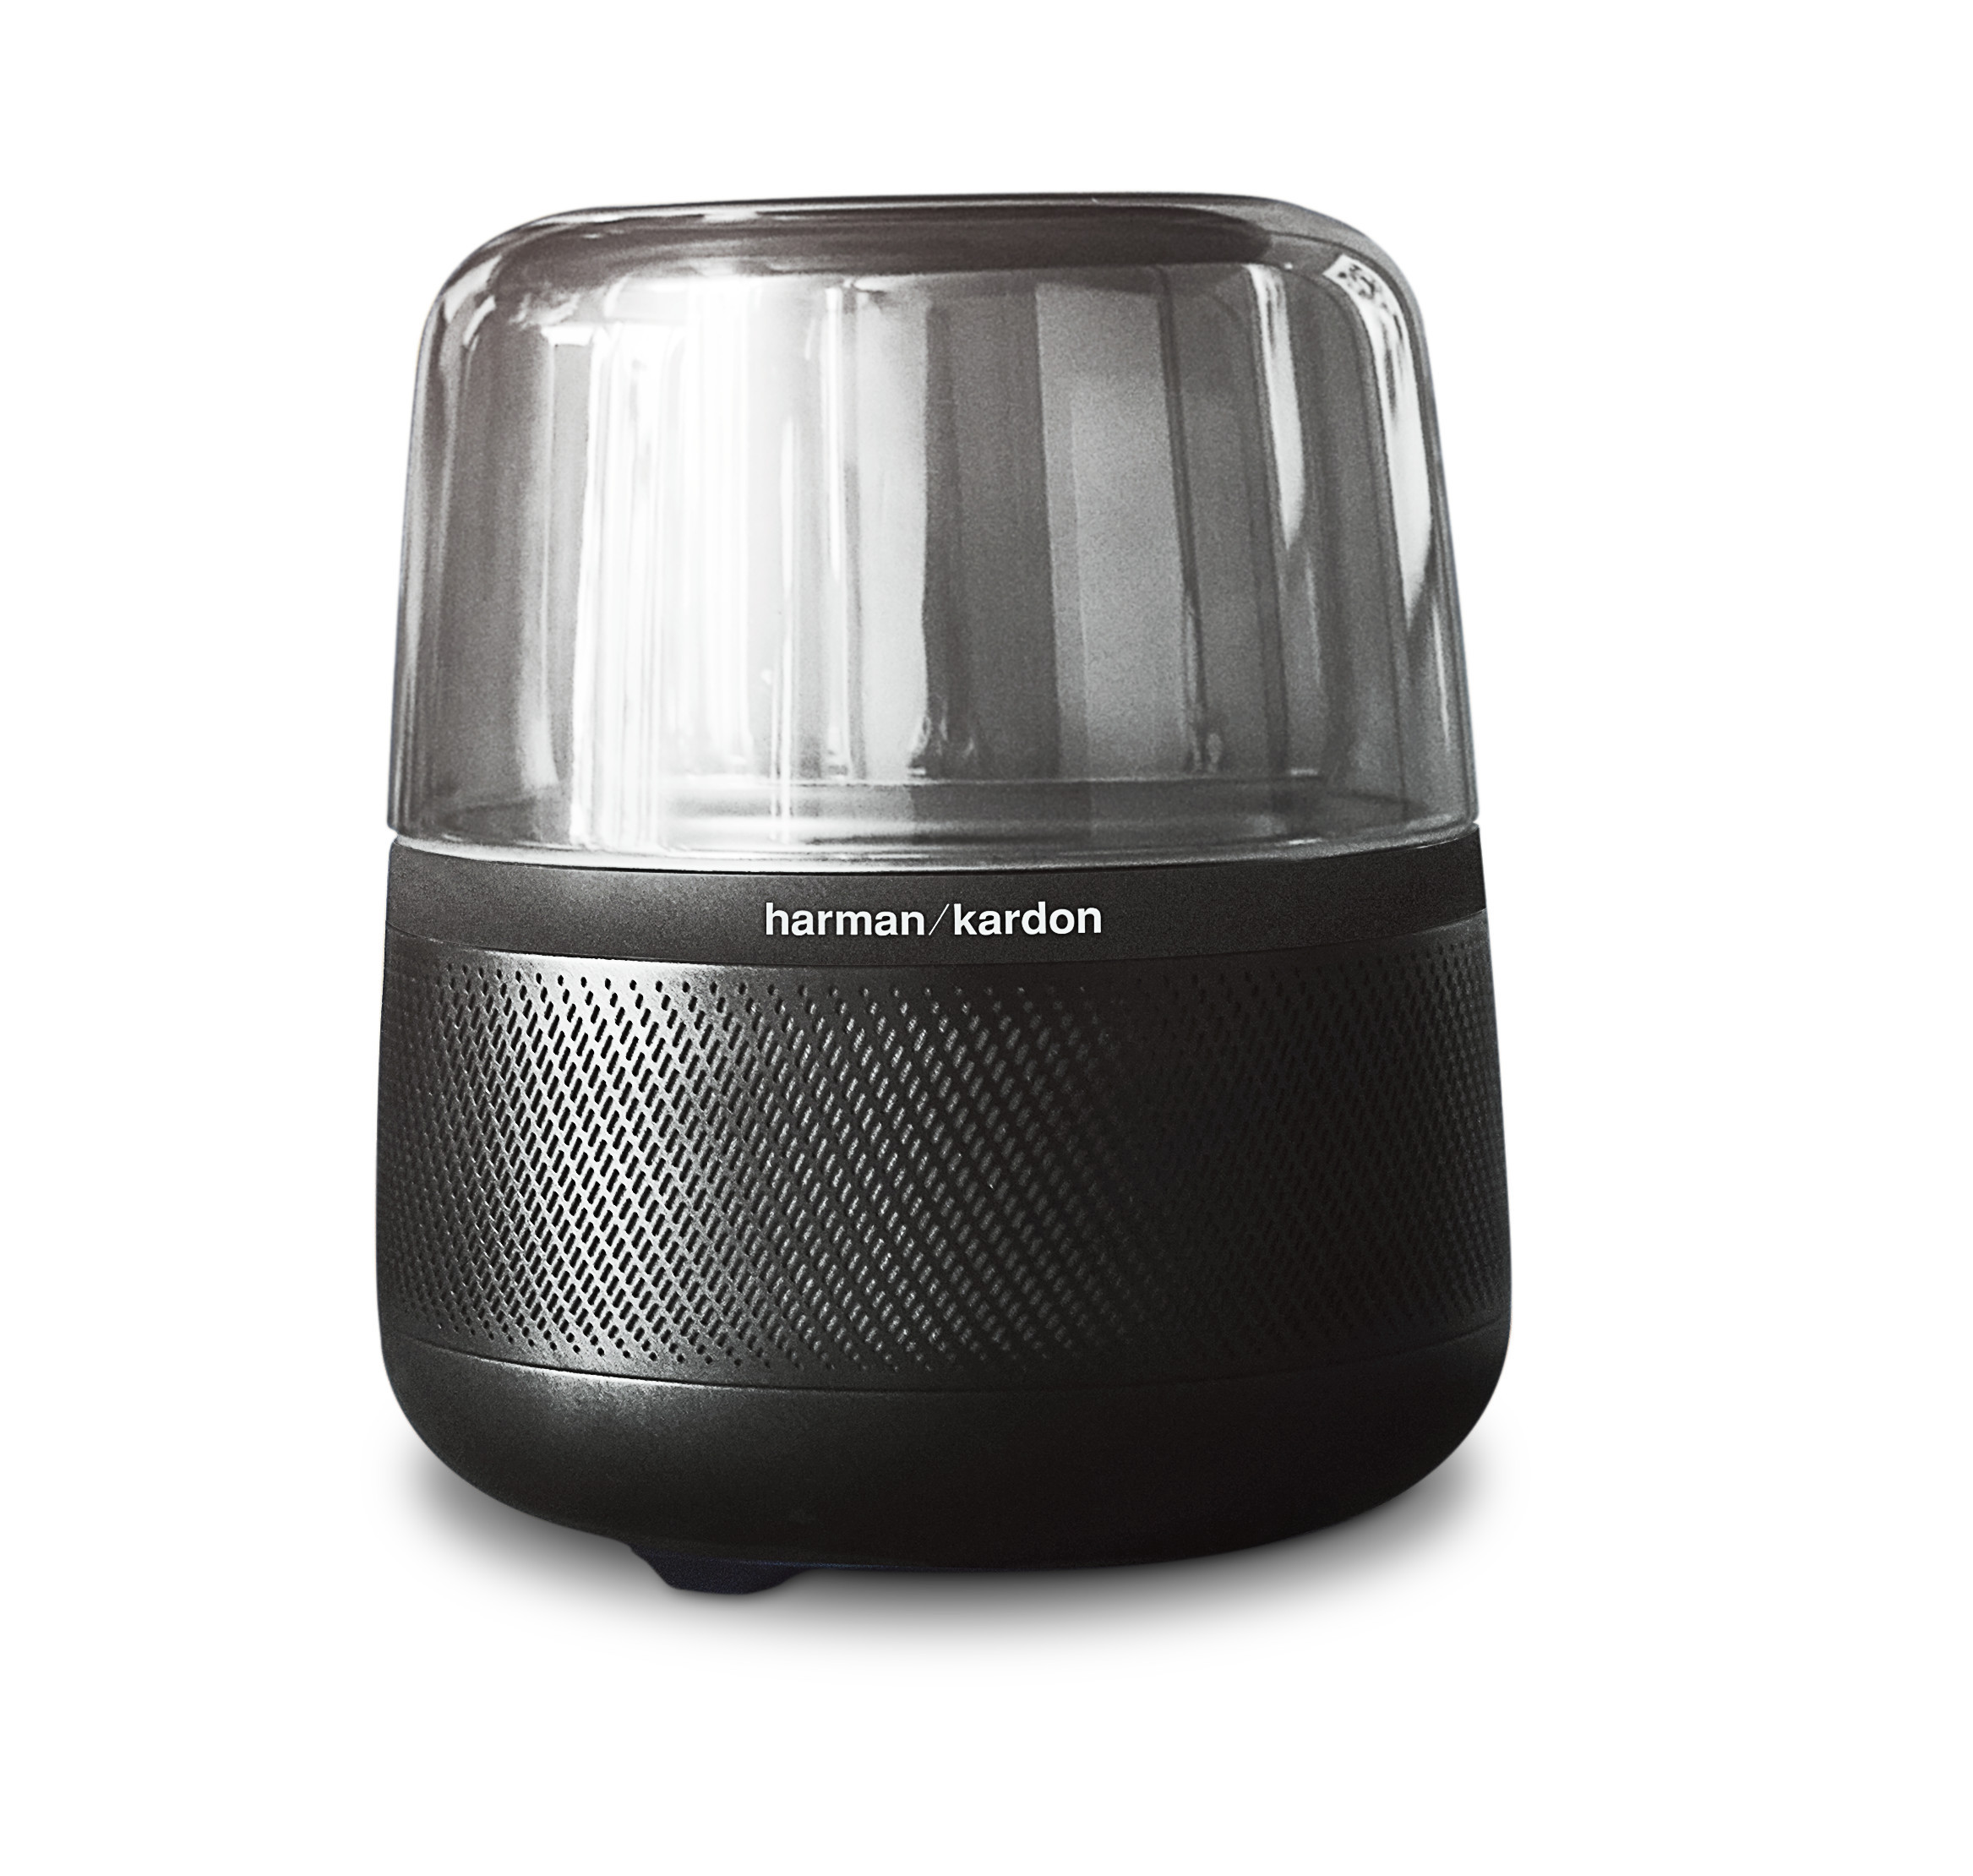 Harman Kardon Allure Alexa Speakers Launched